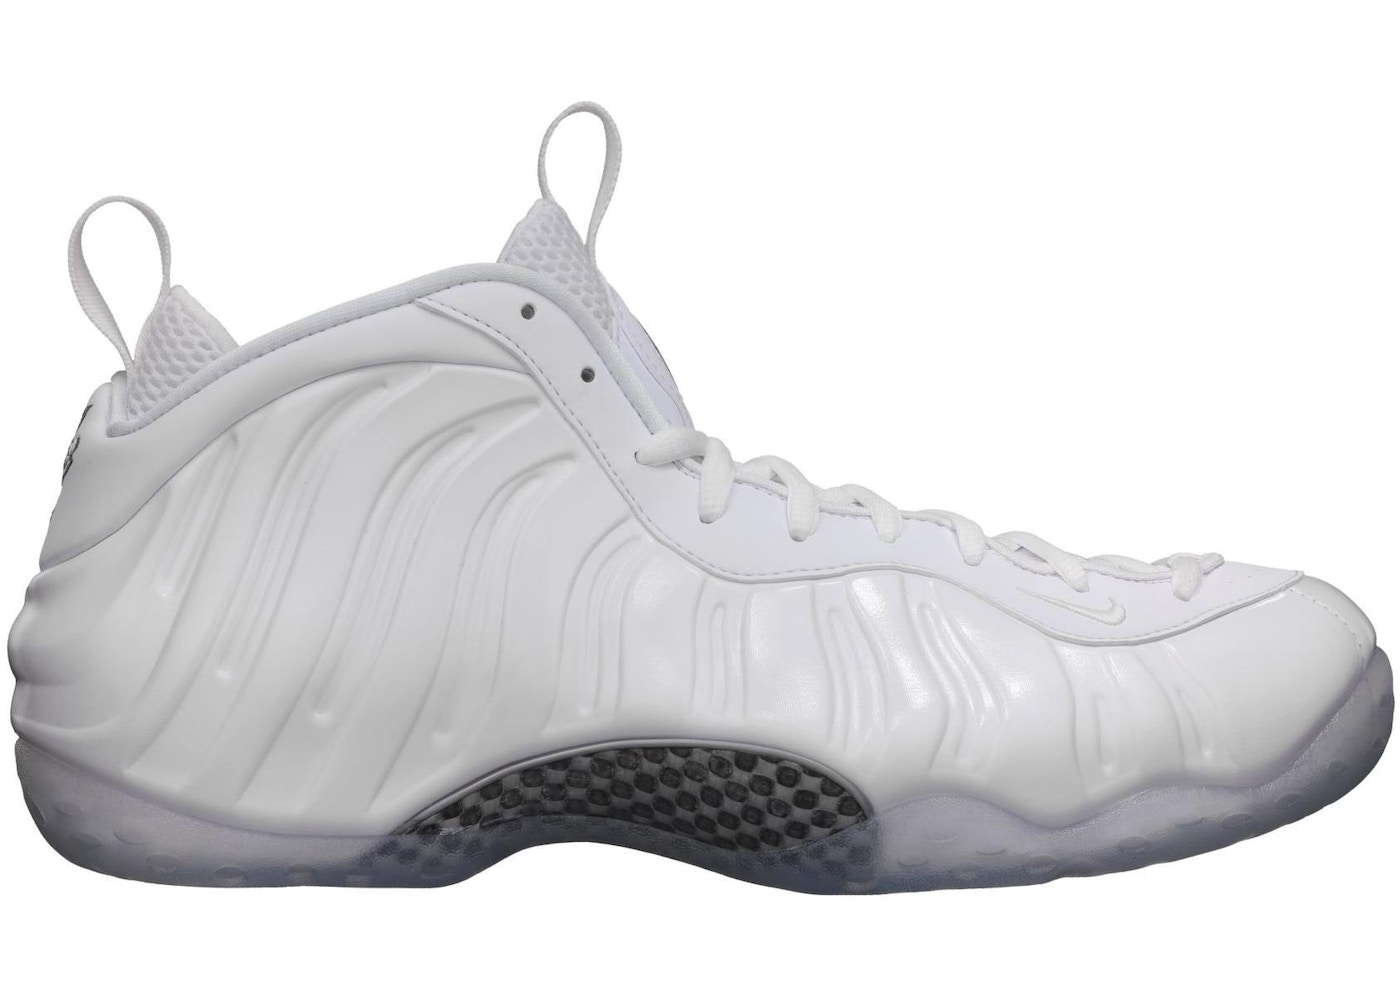 3b7fa43e09d Air Foamposite One White Out - 314996-100